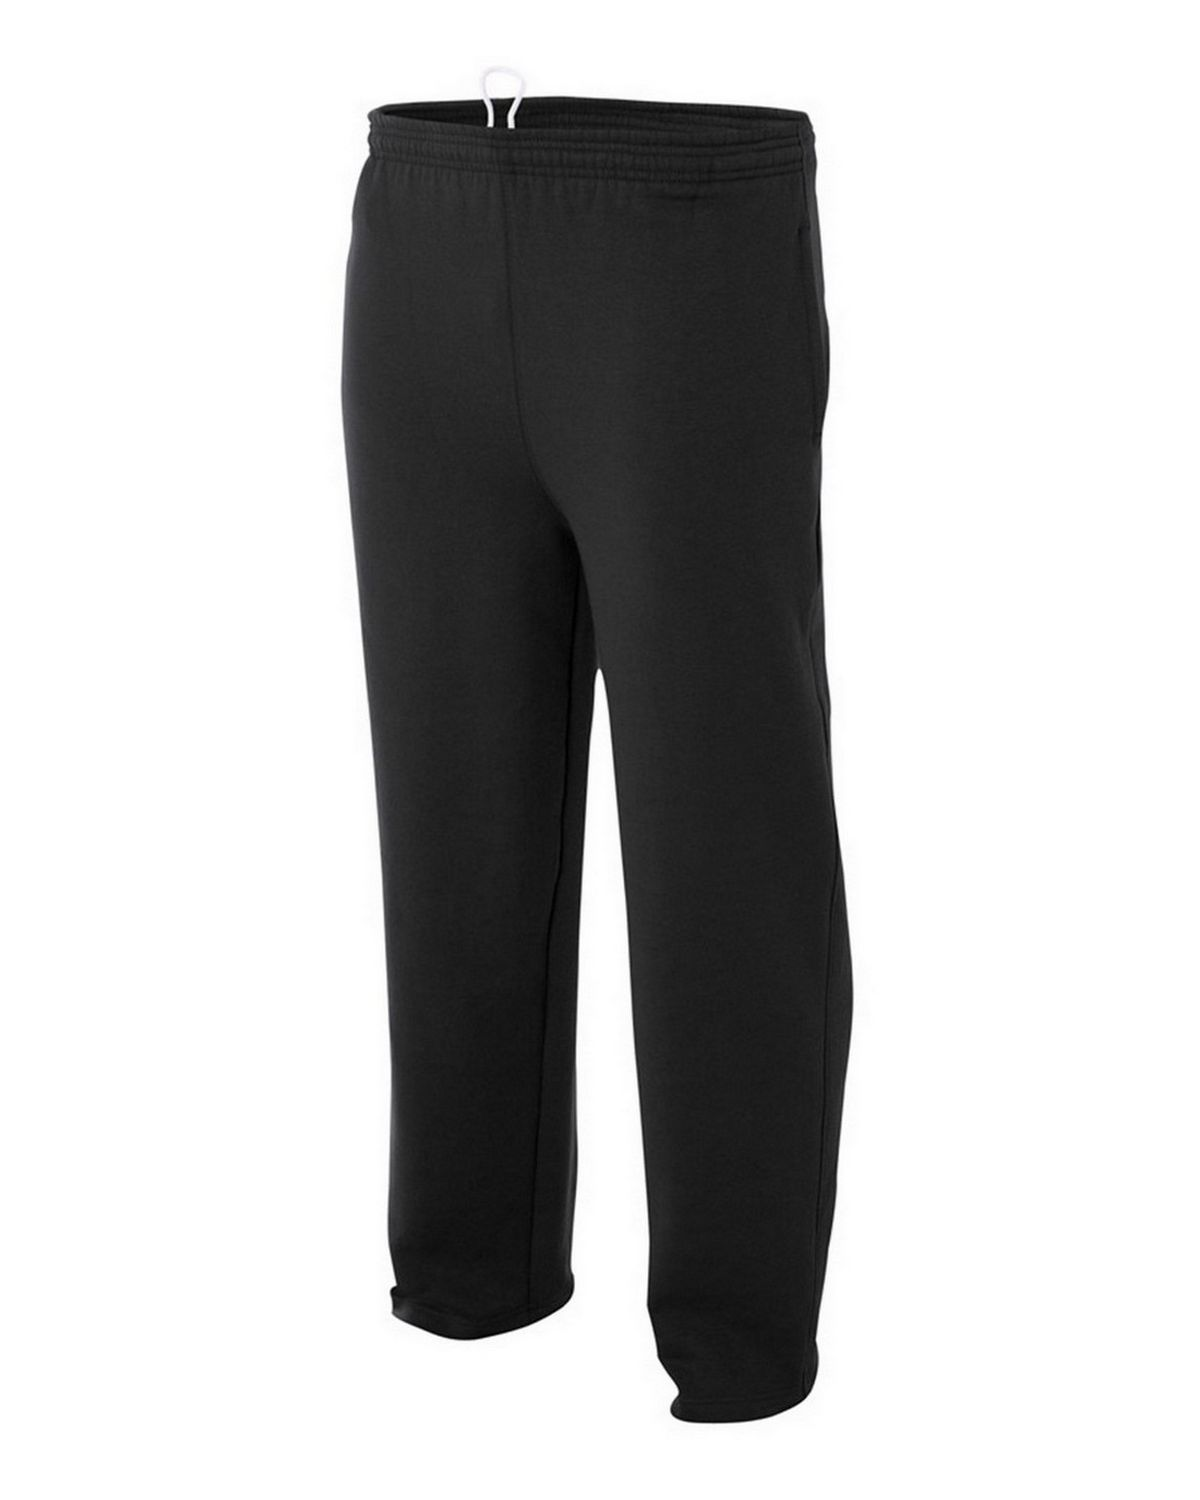 A4 NB6193 Youth Fleece Pants - Black - XL NB6193